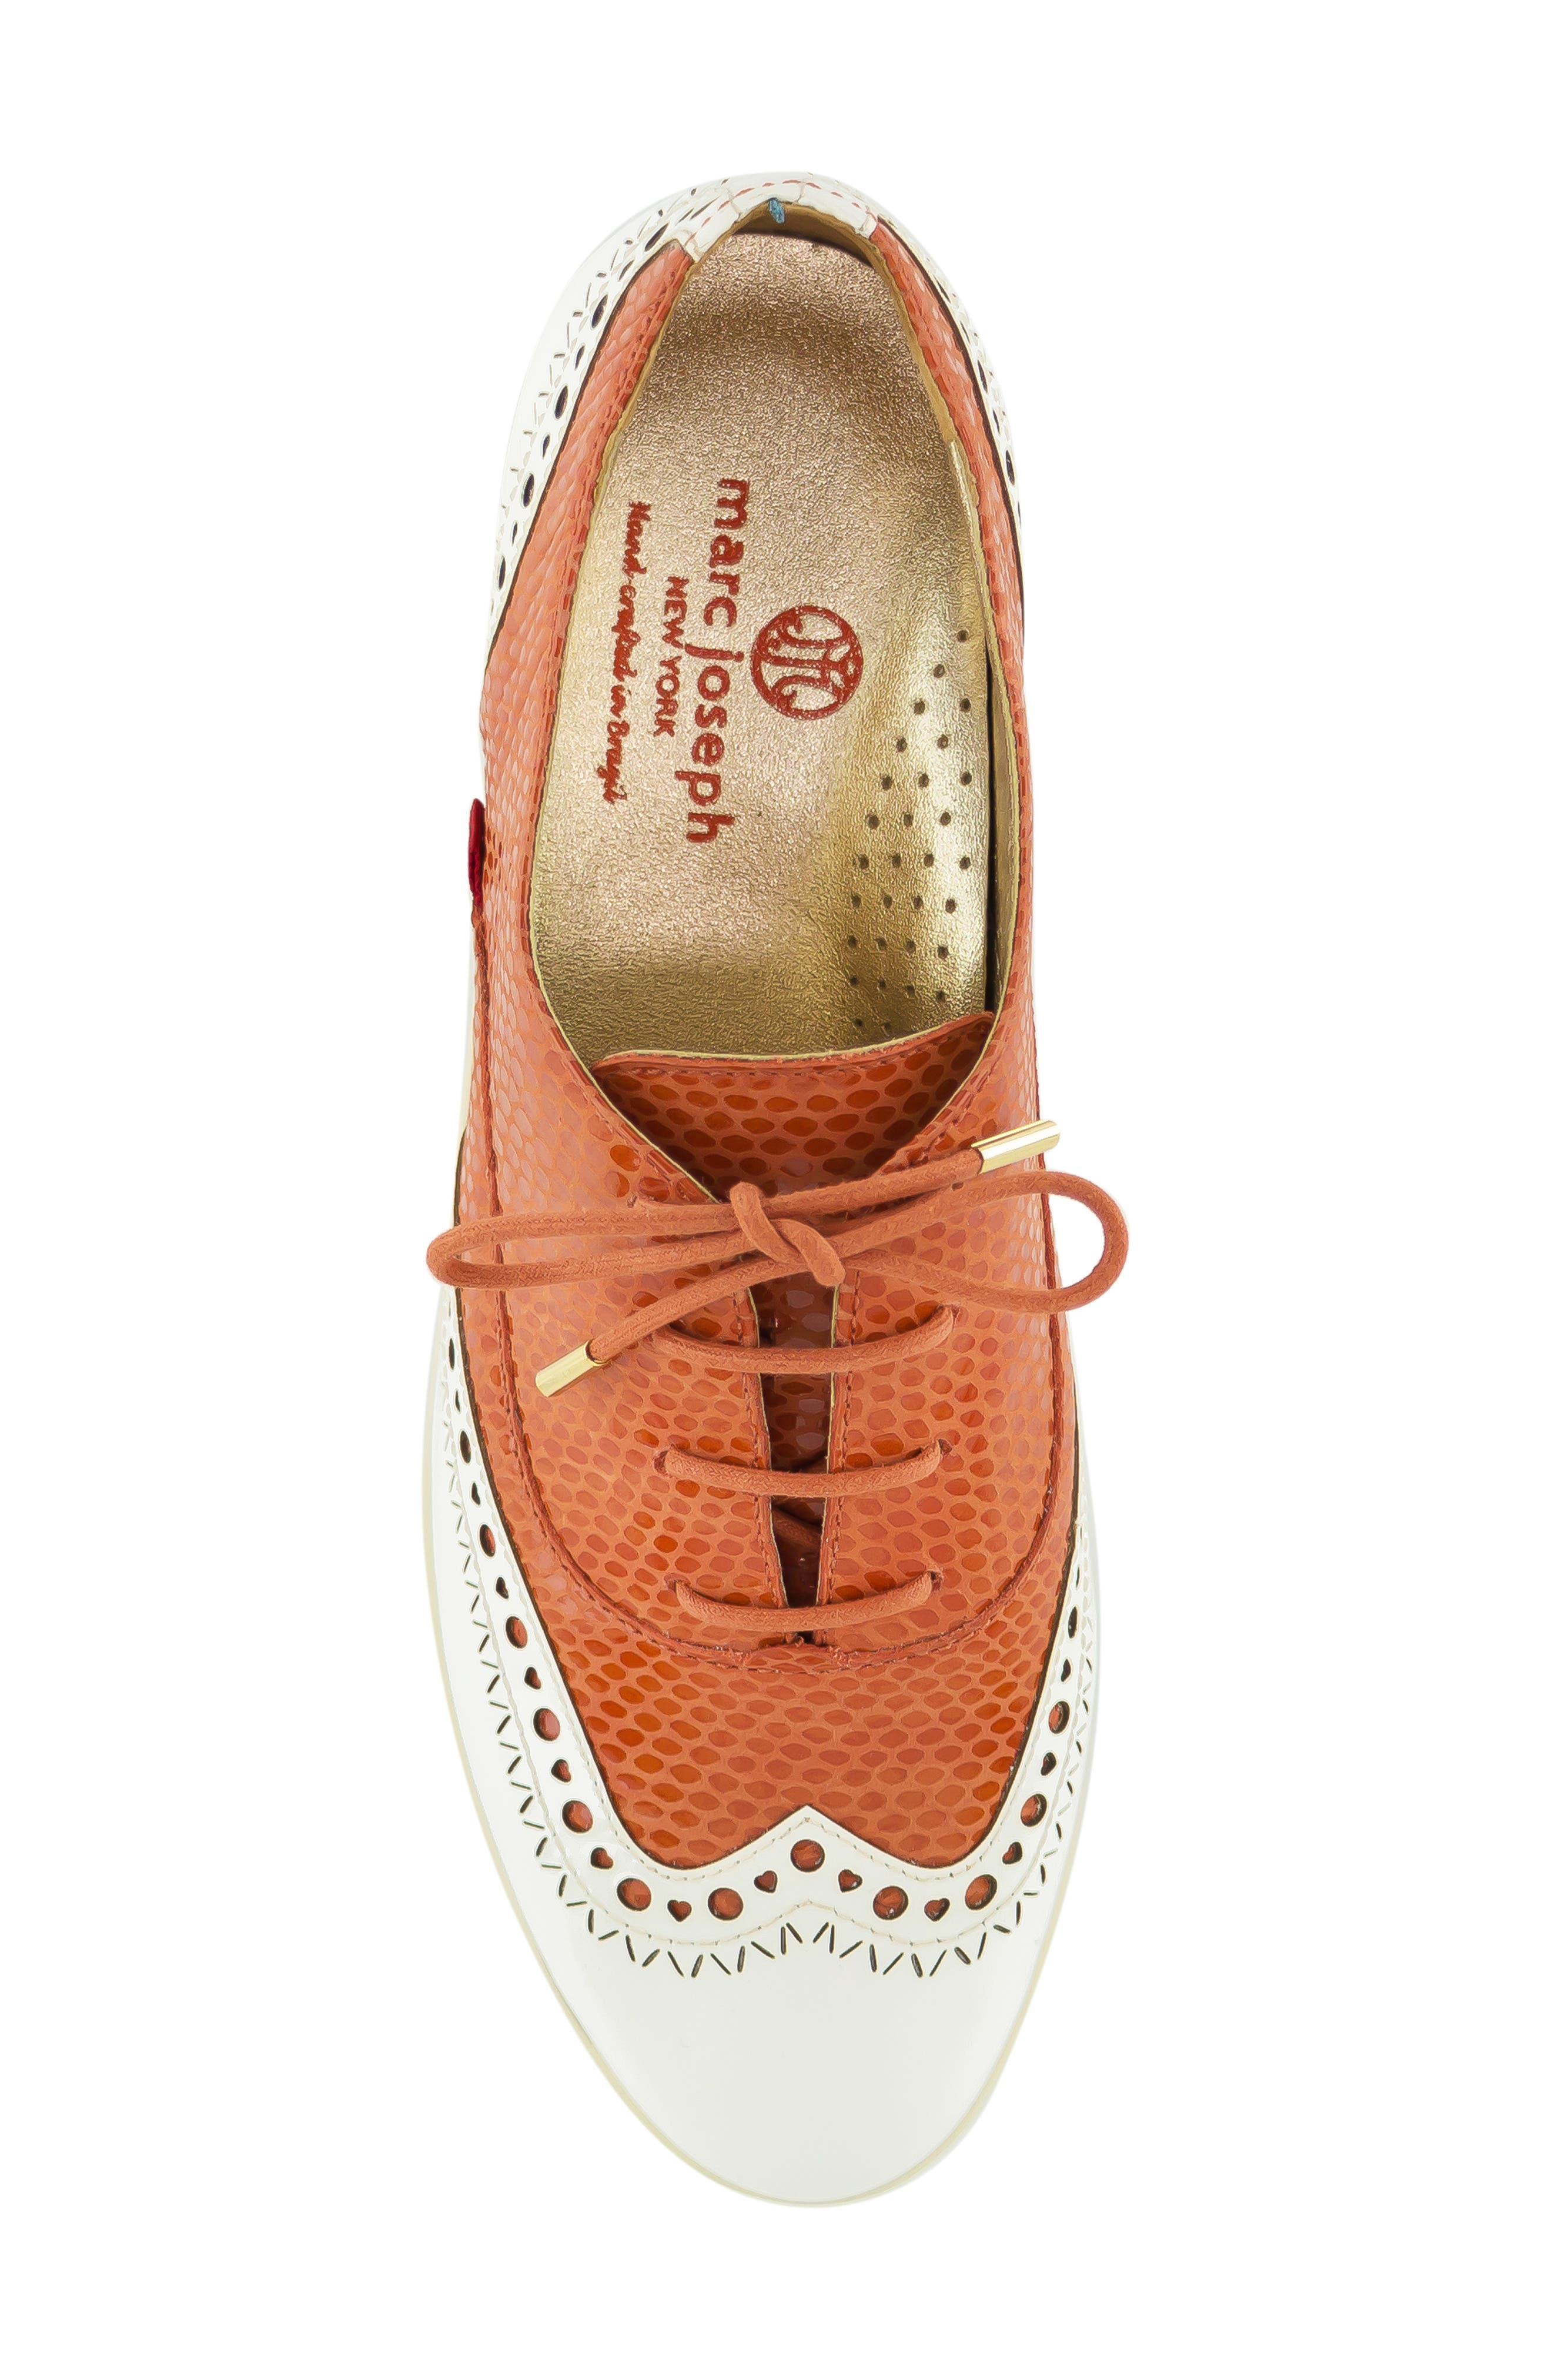 MARC JOSEPH NEW YORK, NYC Golf Loafer, Alternate thumbnail 5, color, CORAL SNAKE PRINT LEATHER